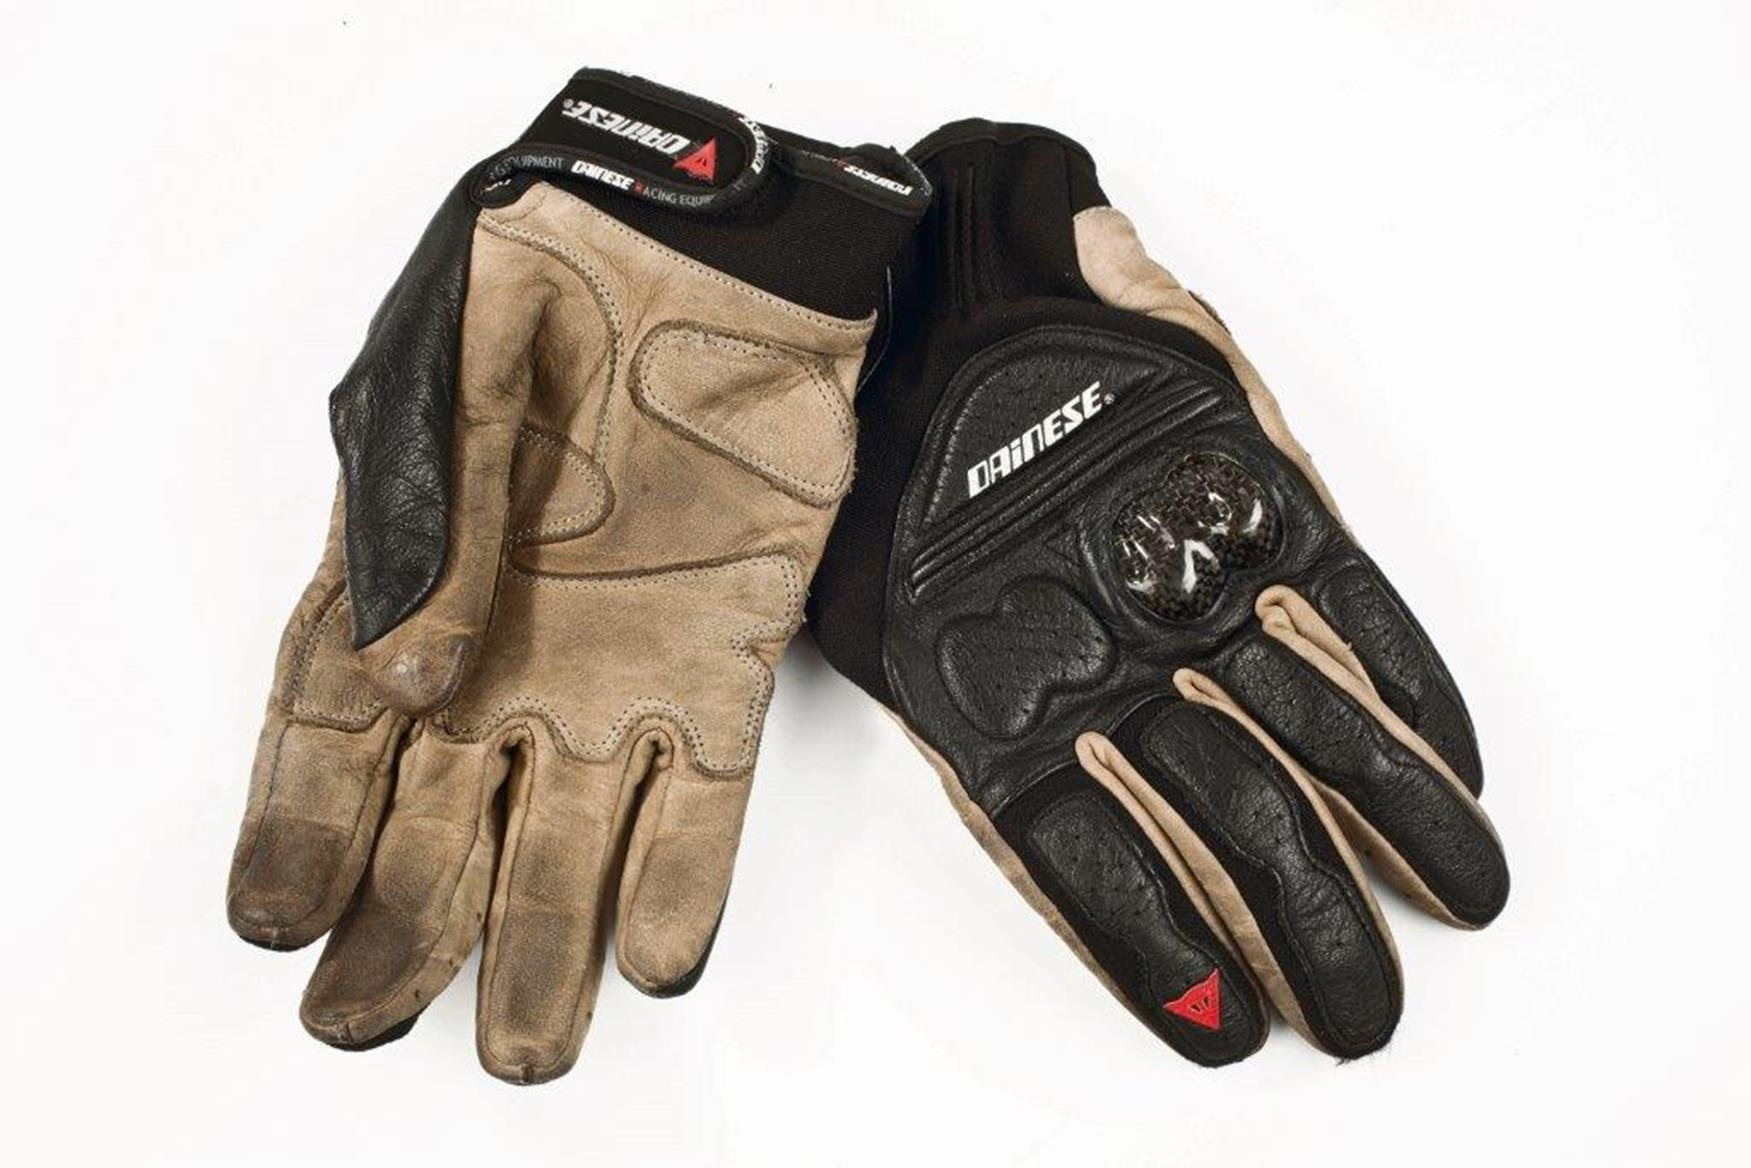 Gloves Review: Dainese X-ILE gloves | MCN